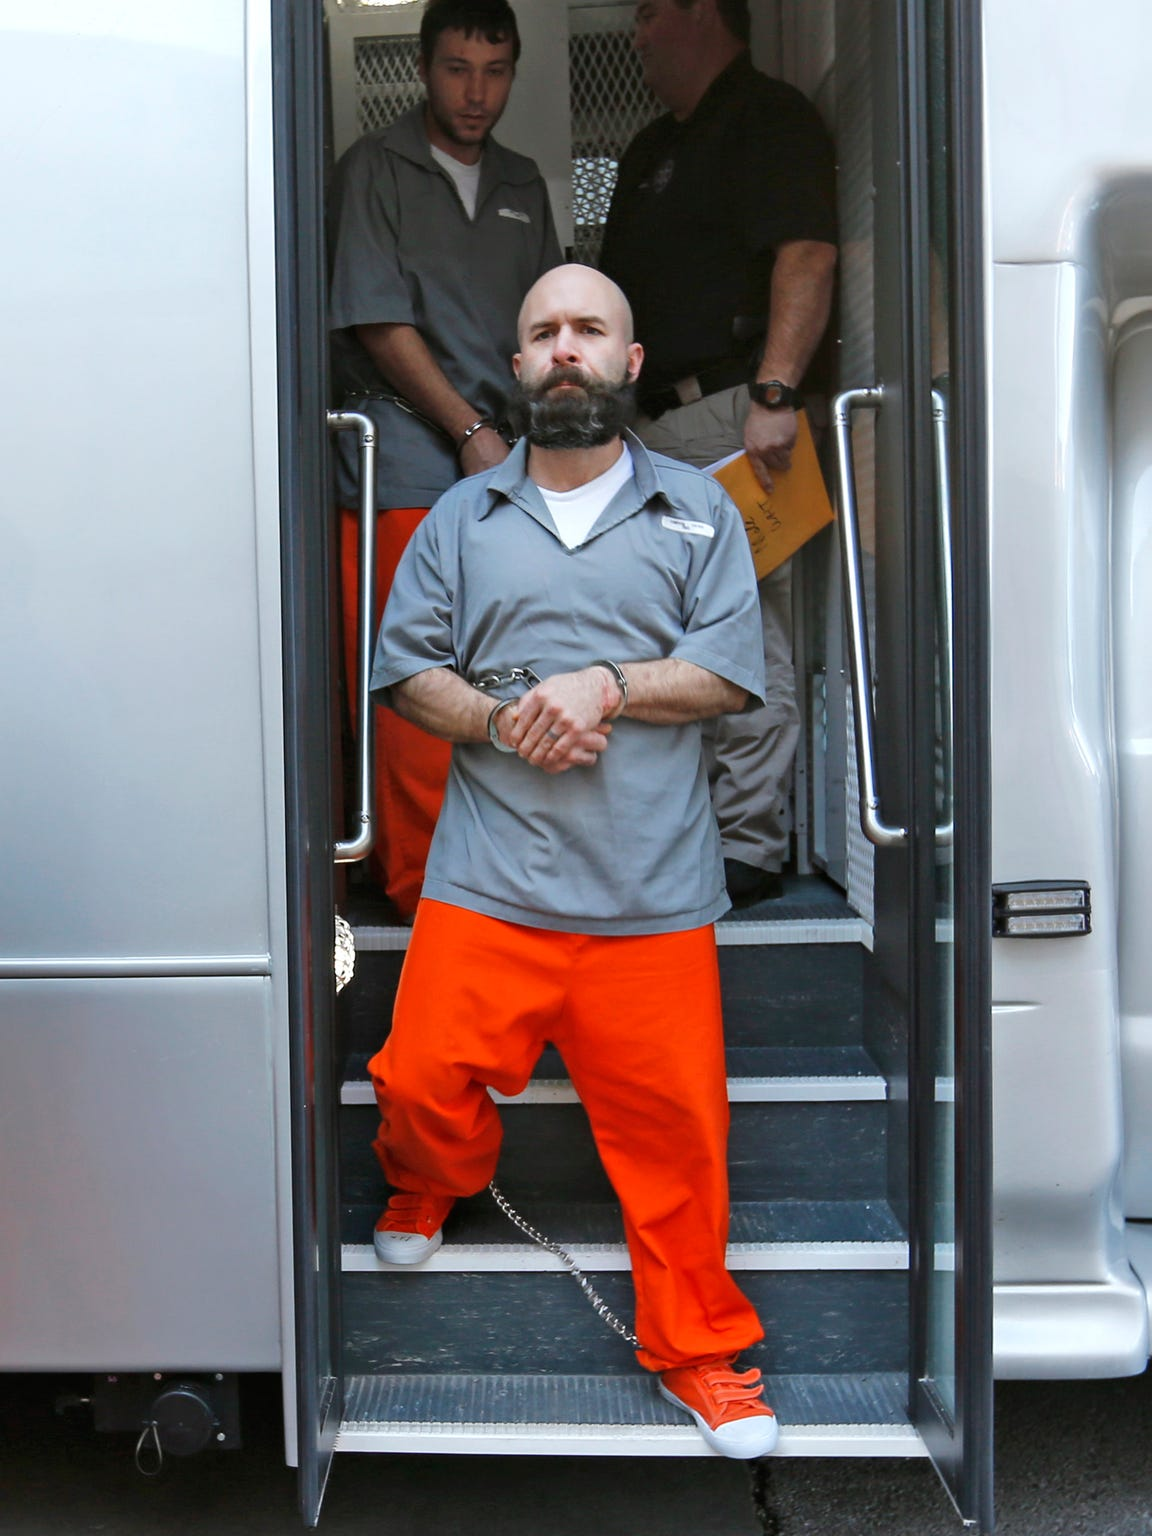 Prisoners step off the bus while being escorted into